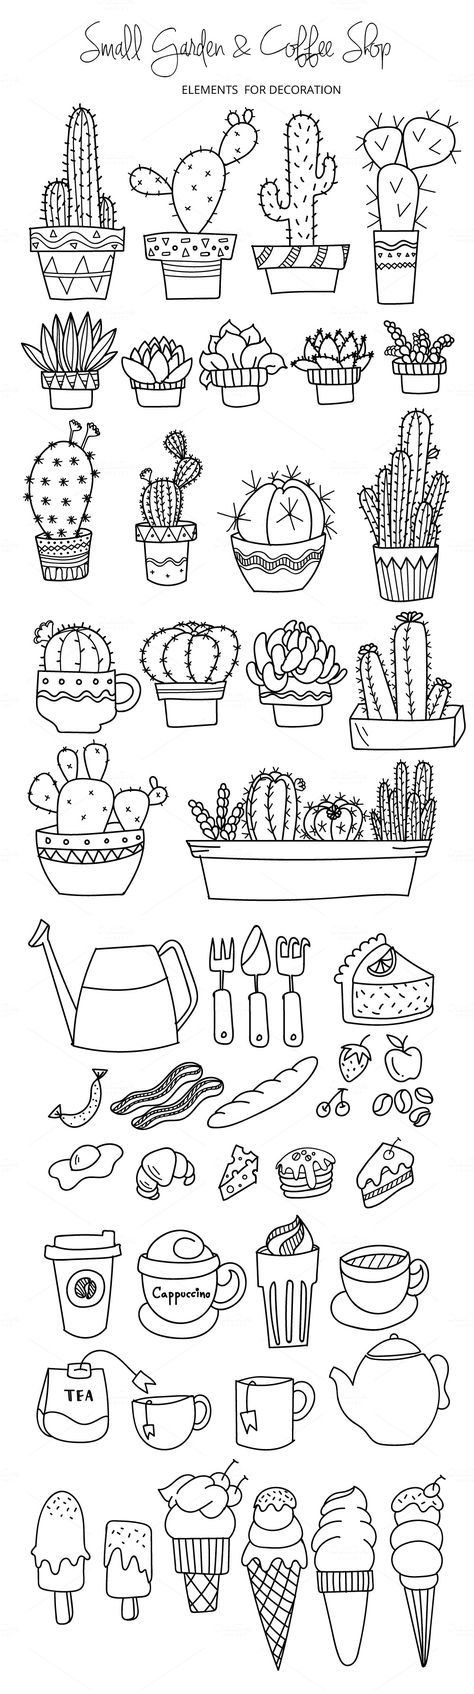 Small Garden & Coffee Shop: card, graphic, elements, flower, word, curl, banner, frame, seamless, invitation, postcard, patterns, templates, anniversary, vector, happy holiday card, hand drawn, bundle, coffee, tea, watercolor, diy, posies, painted, clipart, clip art, garden, leaves, design elements, botanical, decoration, wreathe, popular, logo, pattern, food, kid, meal, eat, menu, cartoon, coffee shop, decorate, cafe, wallpaper, small plant, small garden